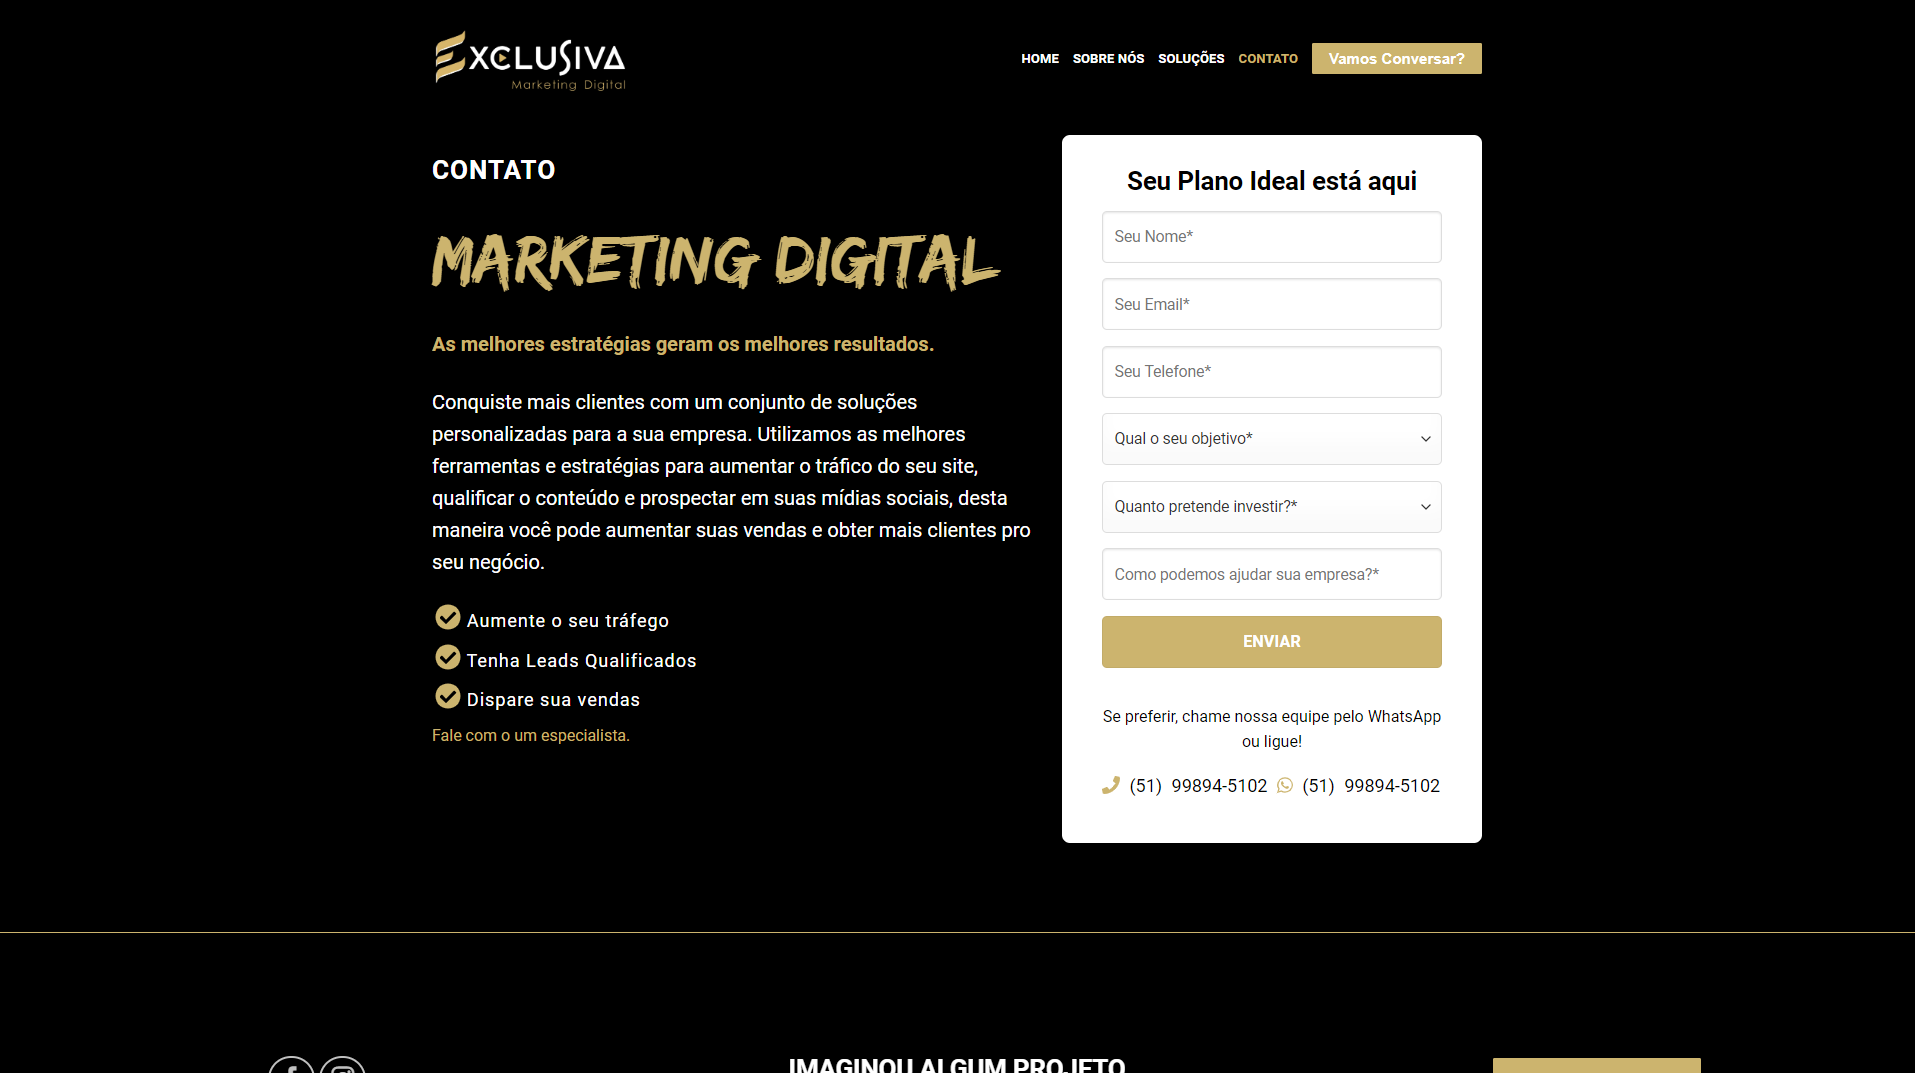 Website Exclusiva Marketing Digital